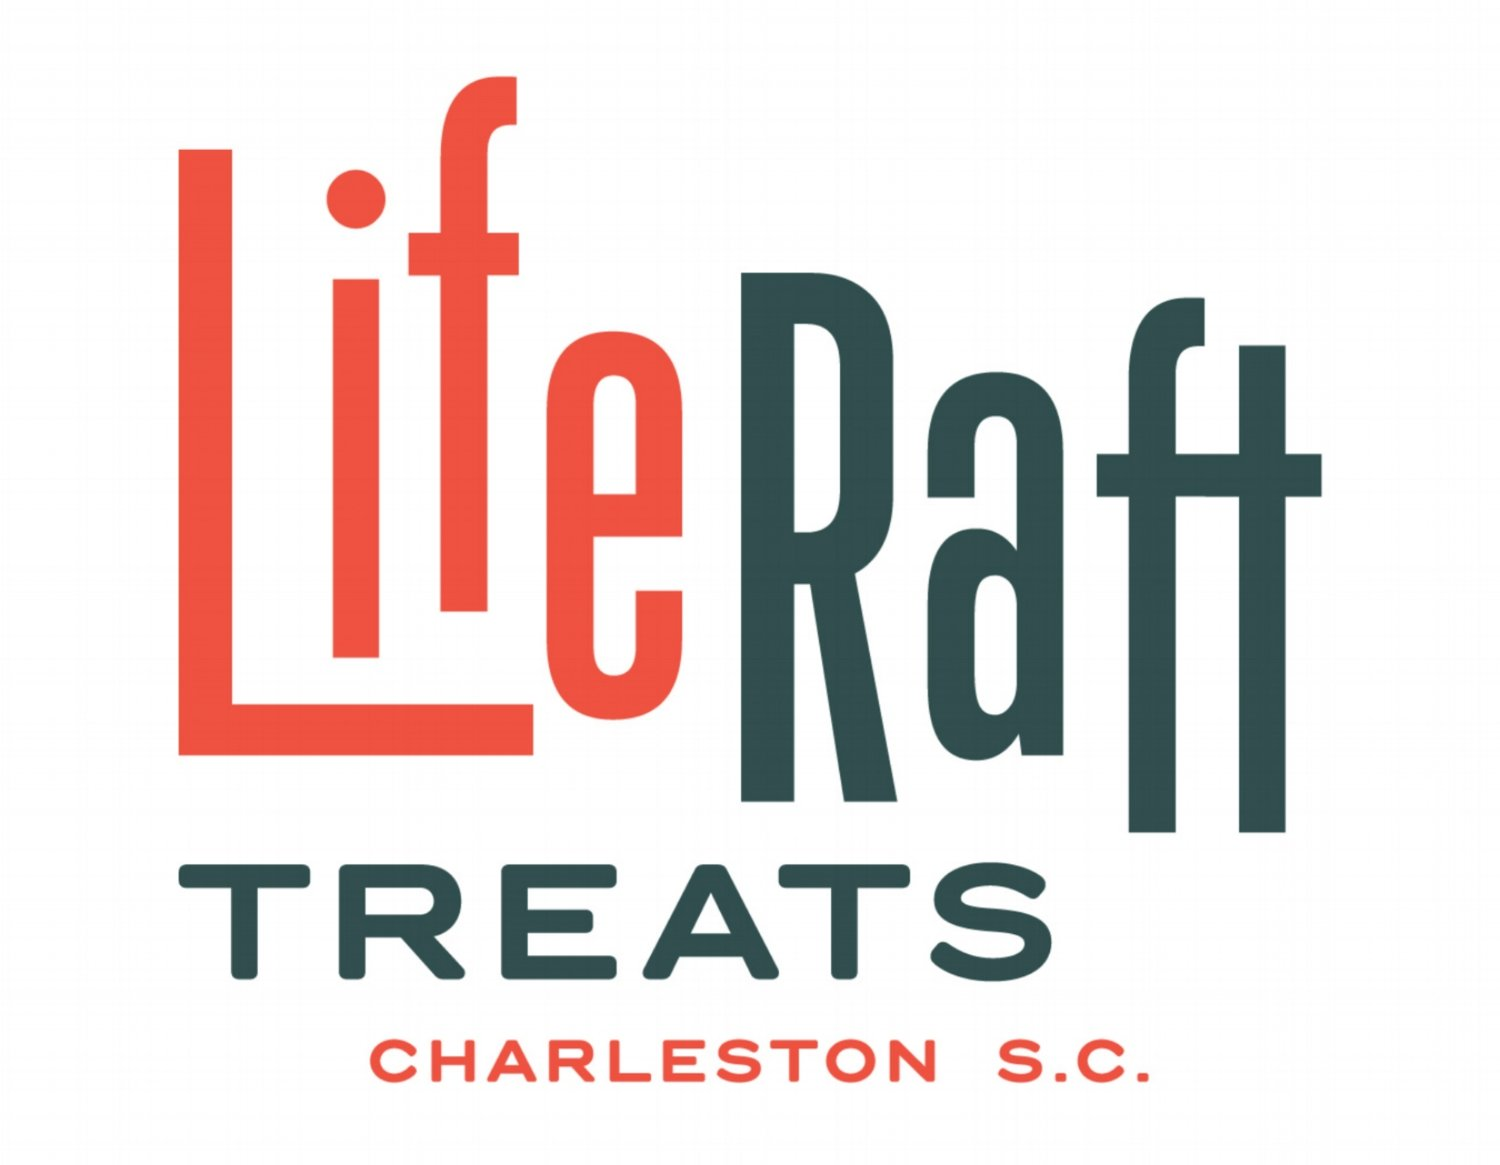 Life Raft Treats